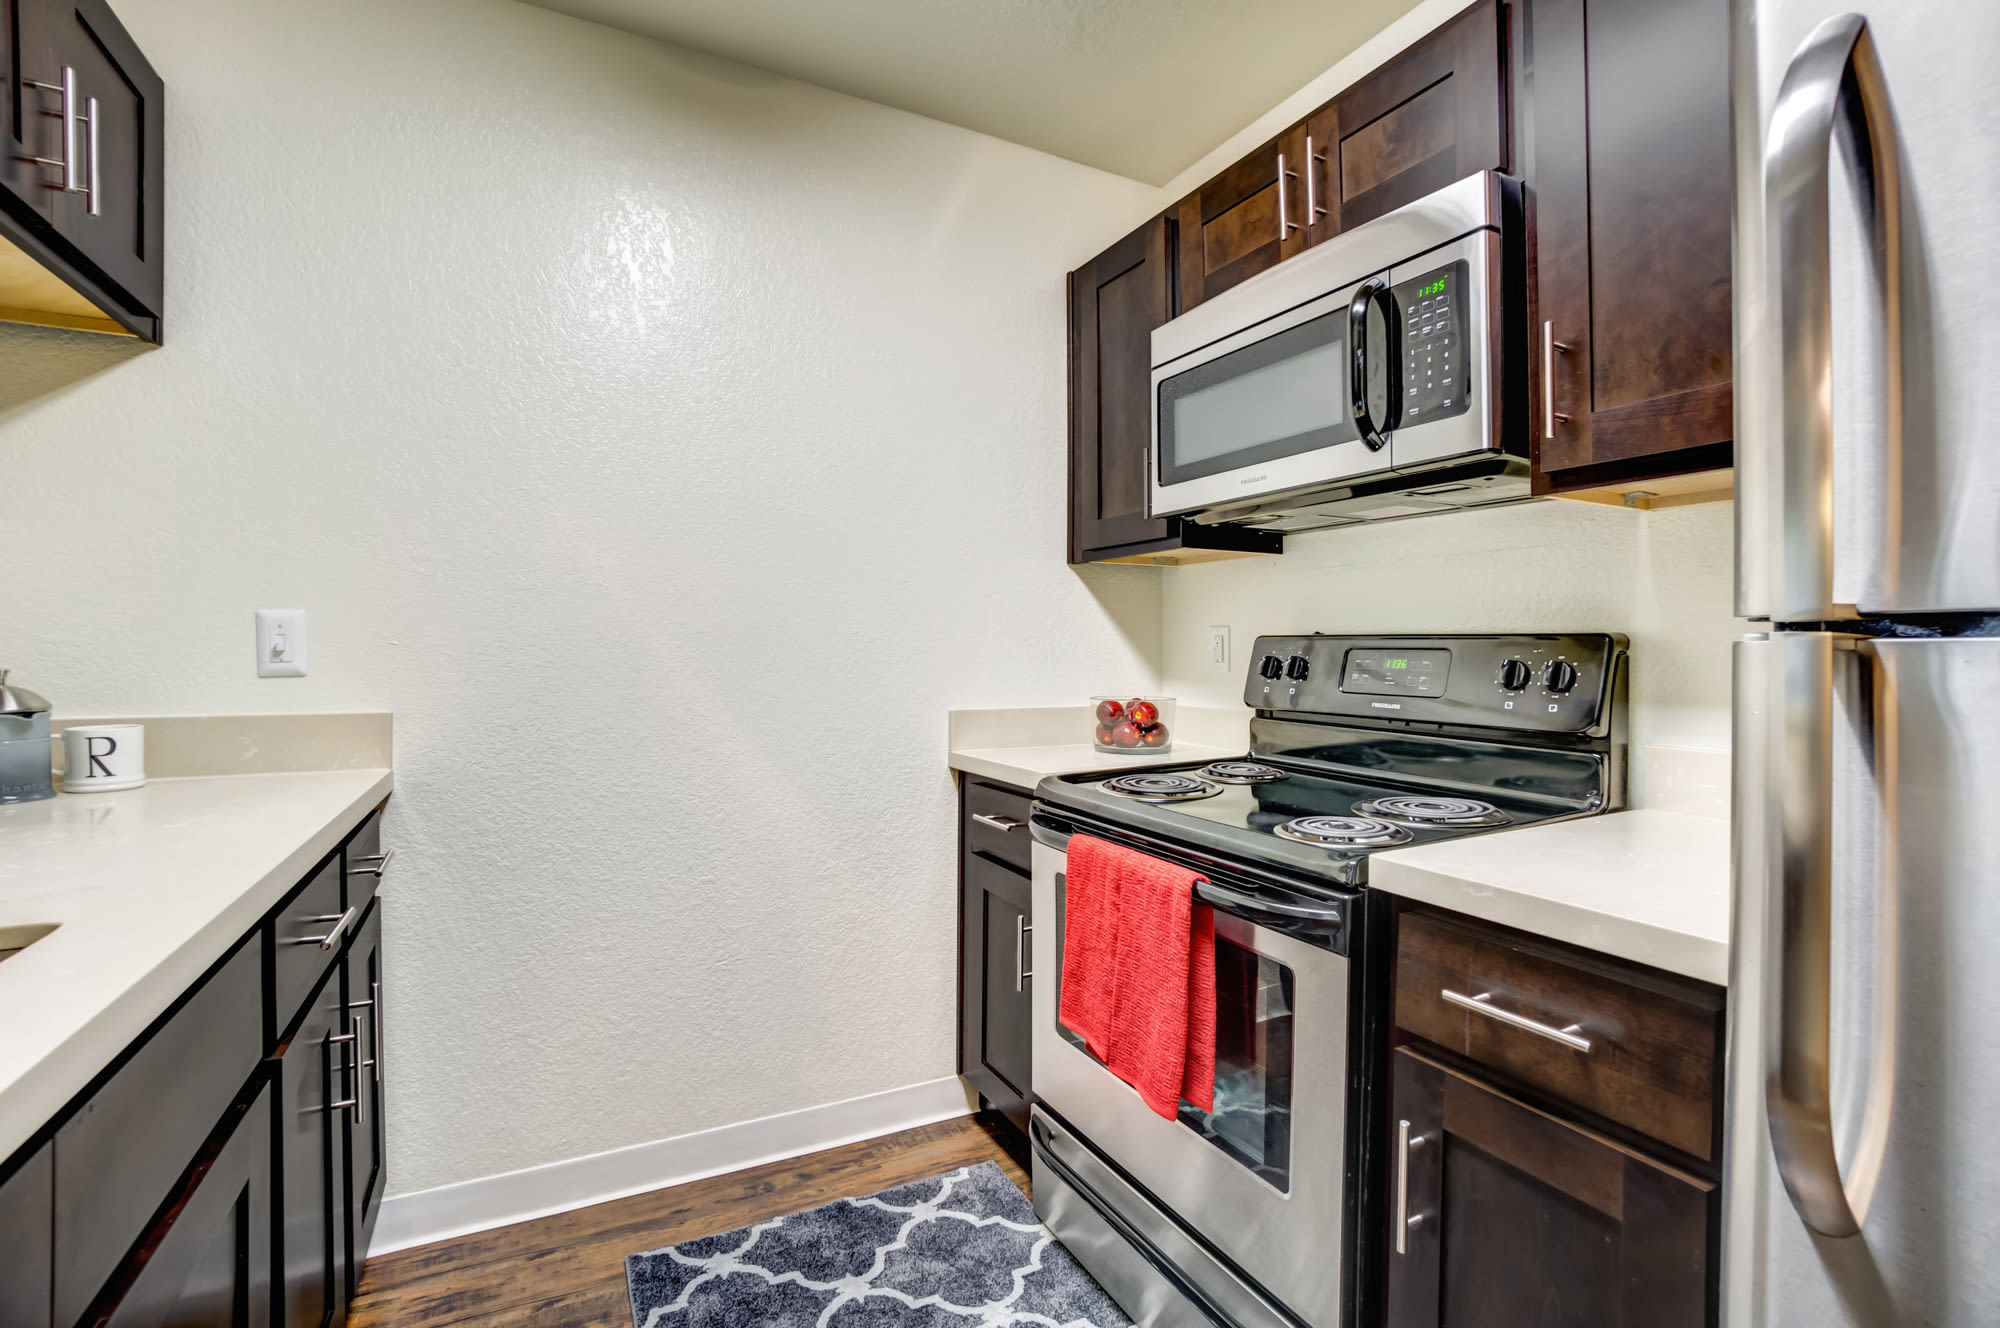 Kitchen at Serramonte Ridge Apartment Homes in Daly City,CA